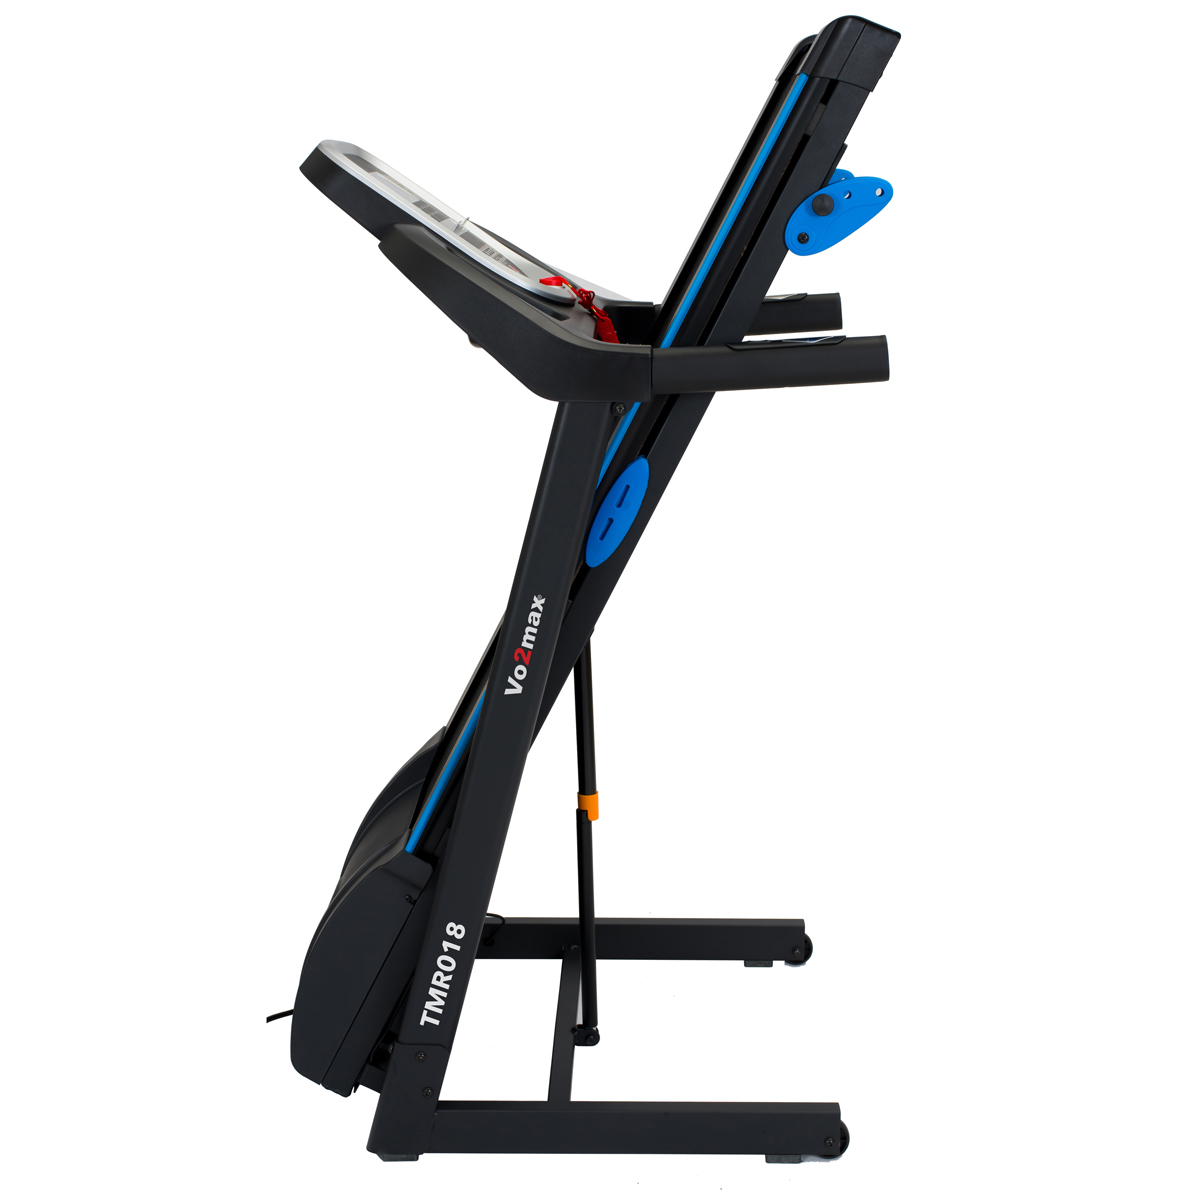 TMR018 TREADMILL by Renouf fitness